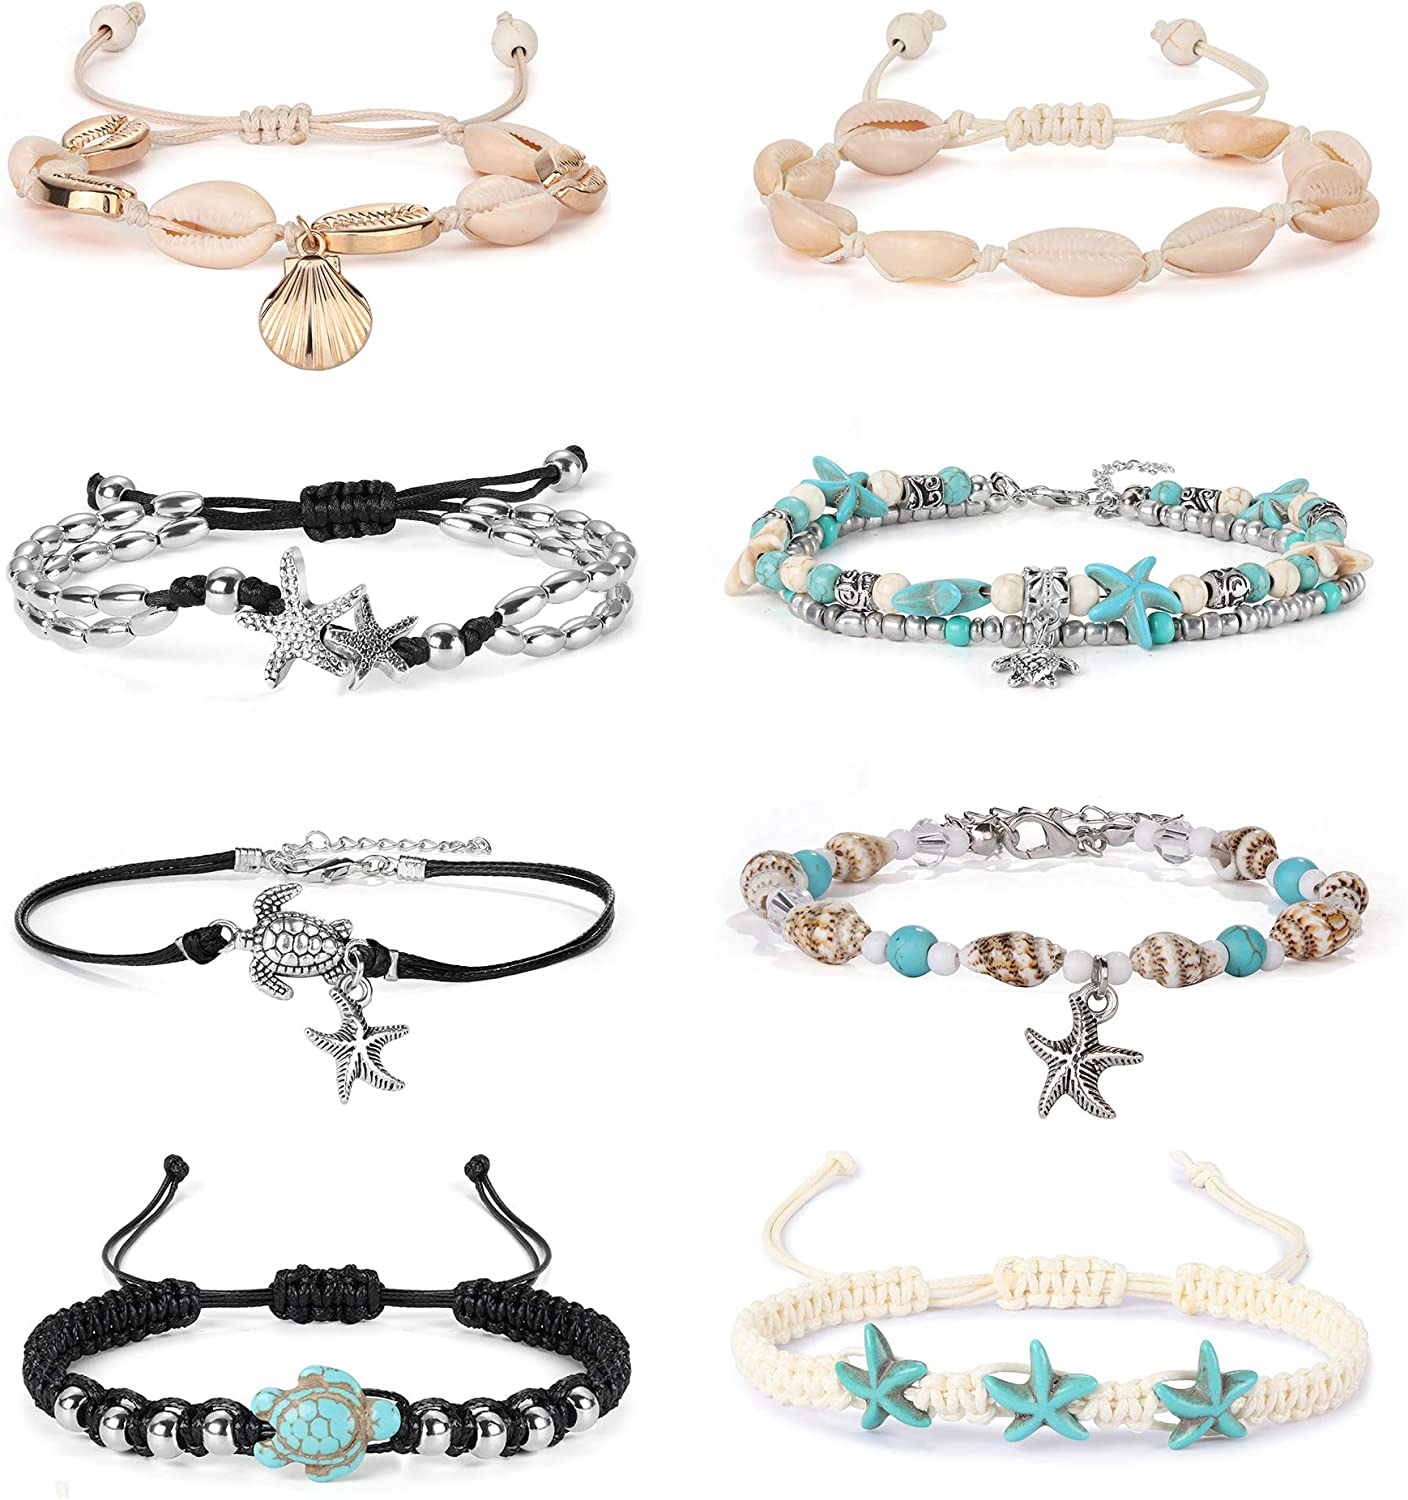 FUNRUN JEWELRY 8PCS Starfish Turtle Shell Anklet for Women Girls Handmade Multilayer Anklet Bracelet Adjustable Beach Foot Jewelry